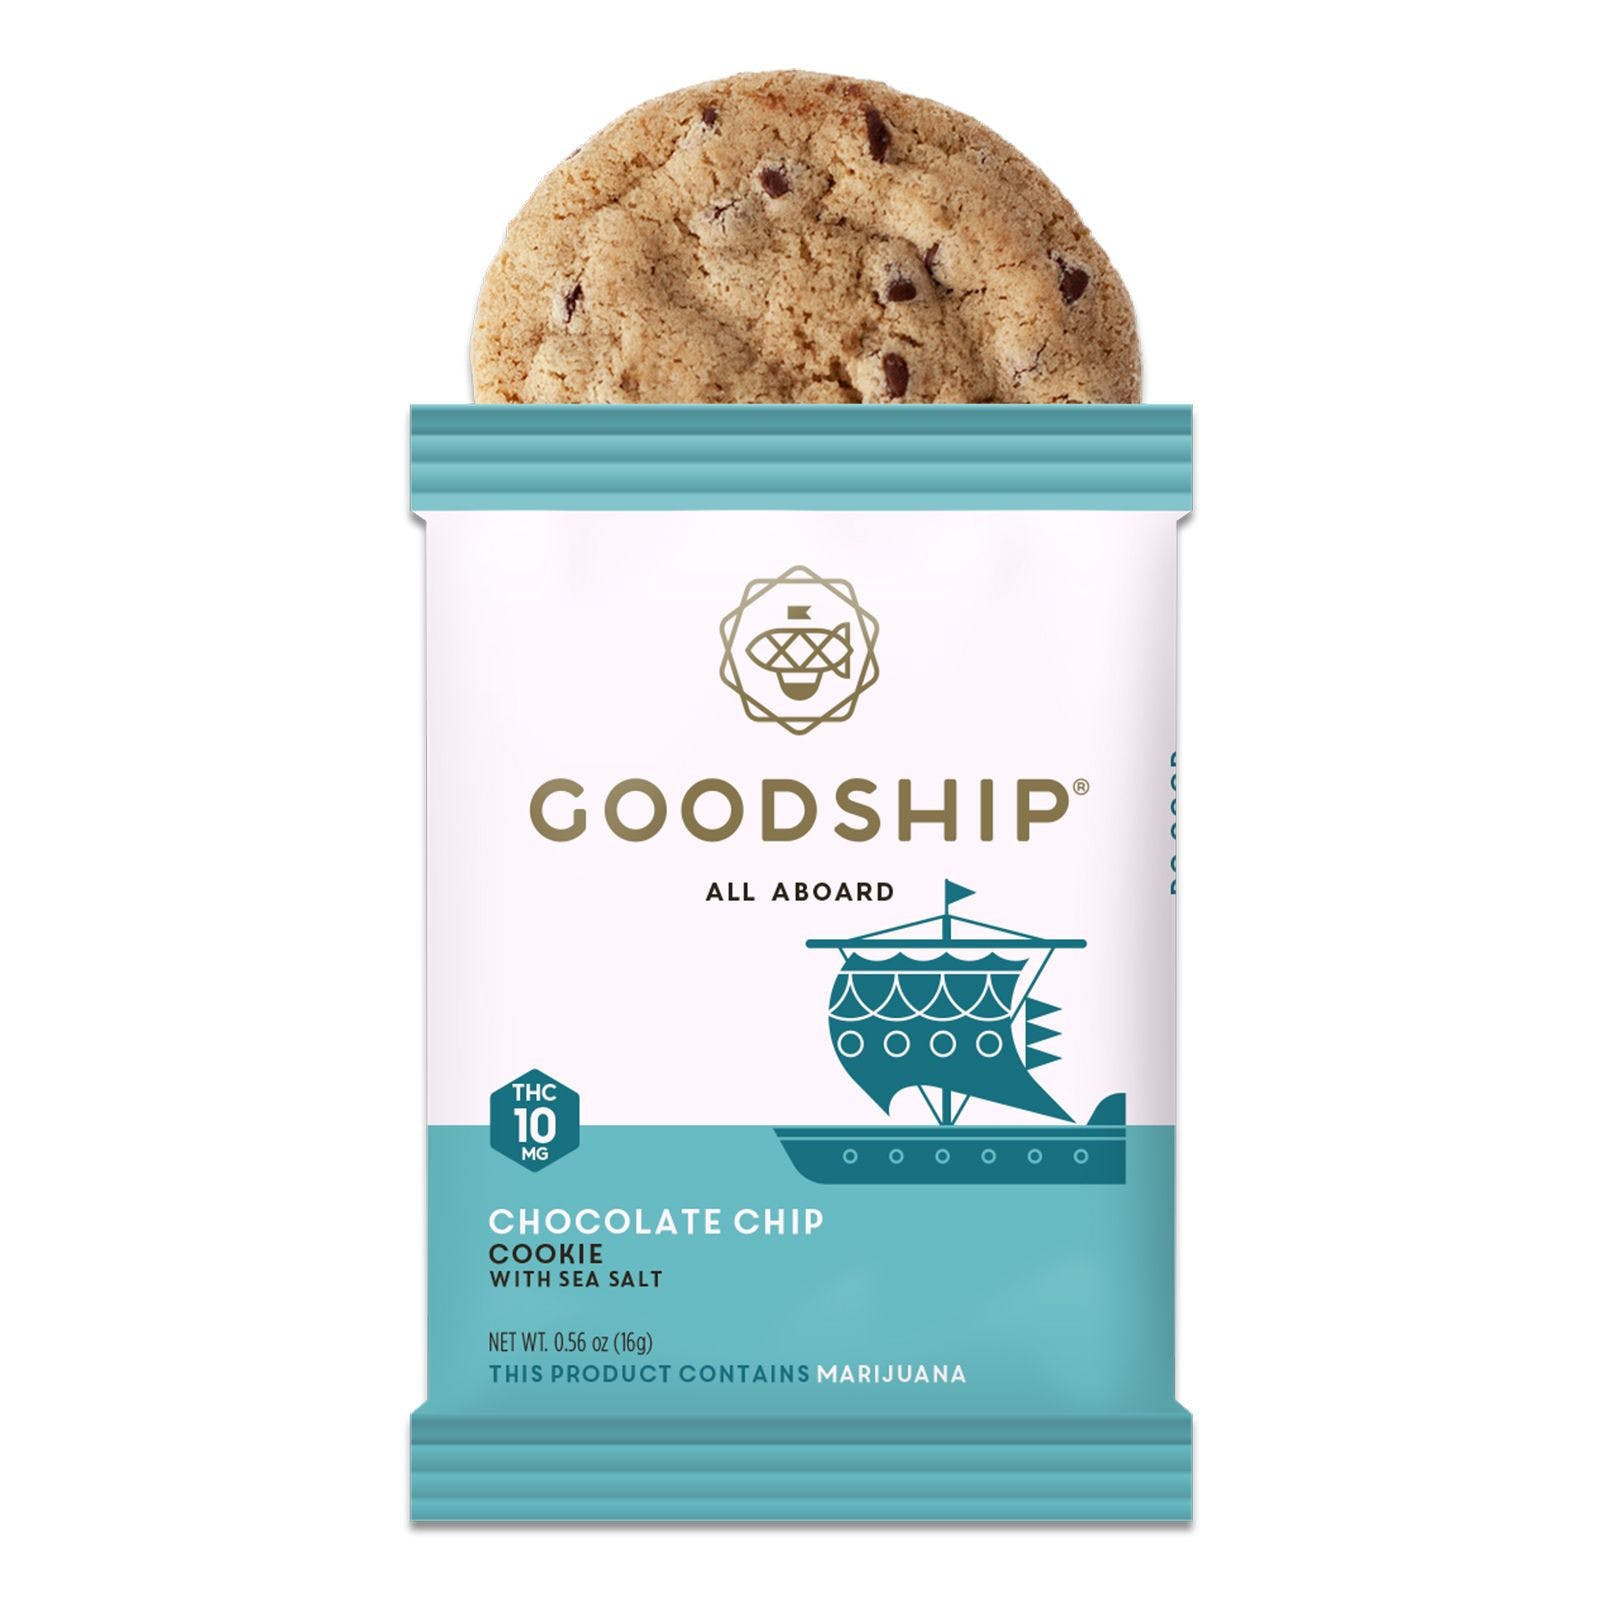 edible-double-chocolate-chip-cbd-10mg-goodship